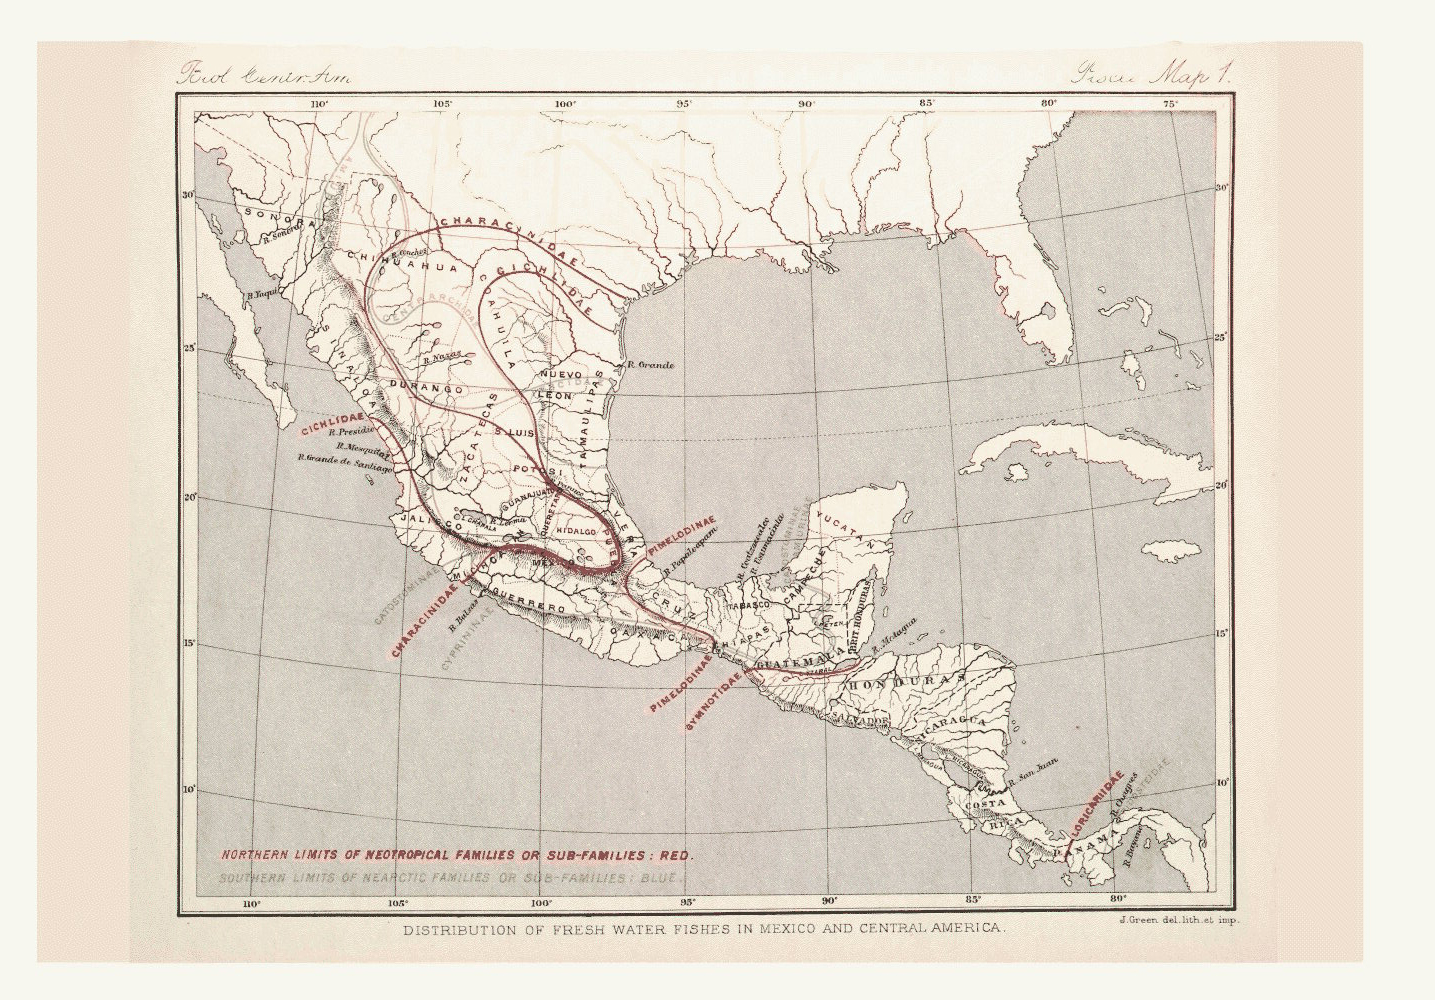 Map of Central America and Mexico,  Image number:bca_05_00_00_297